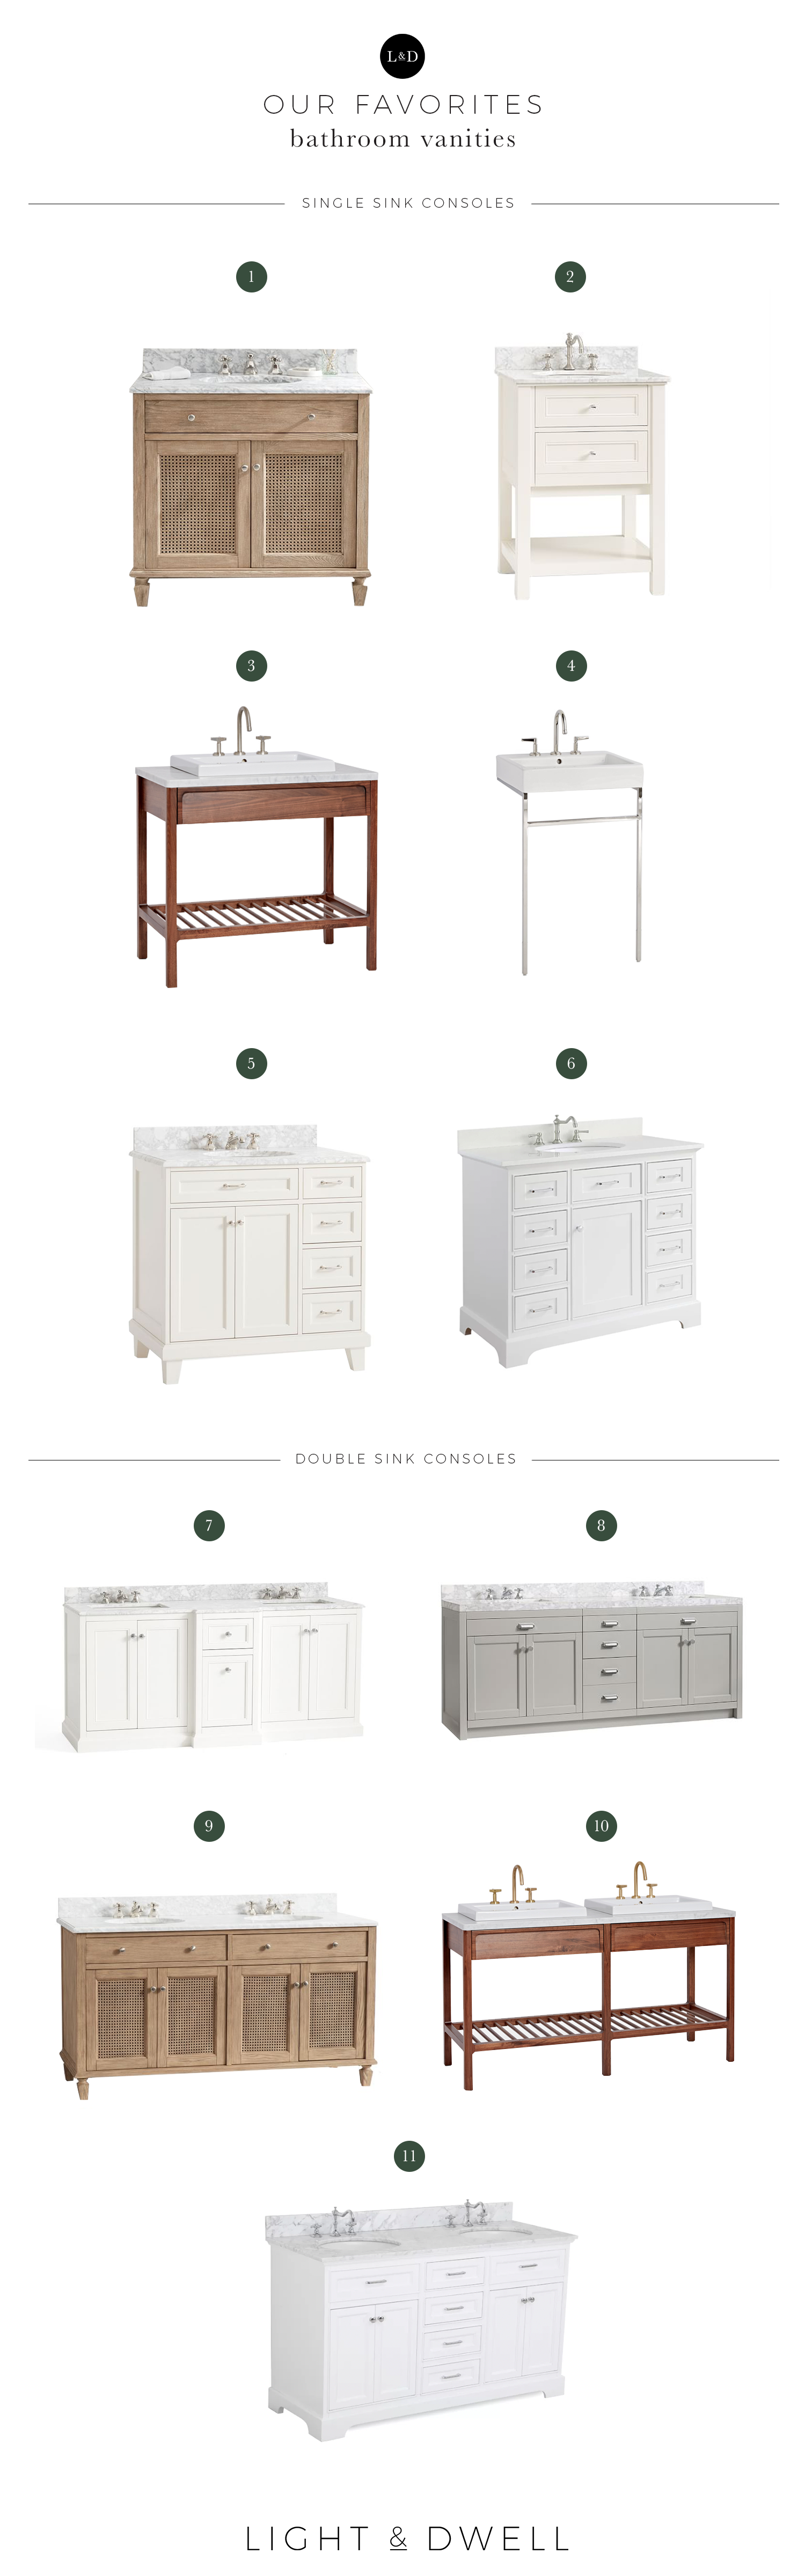 L+D_ourfavorites_bathroomvanities.png